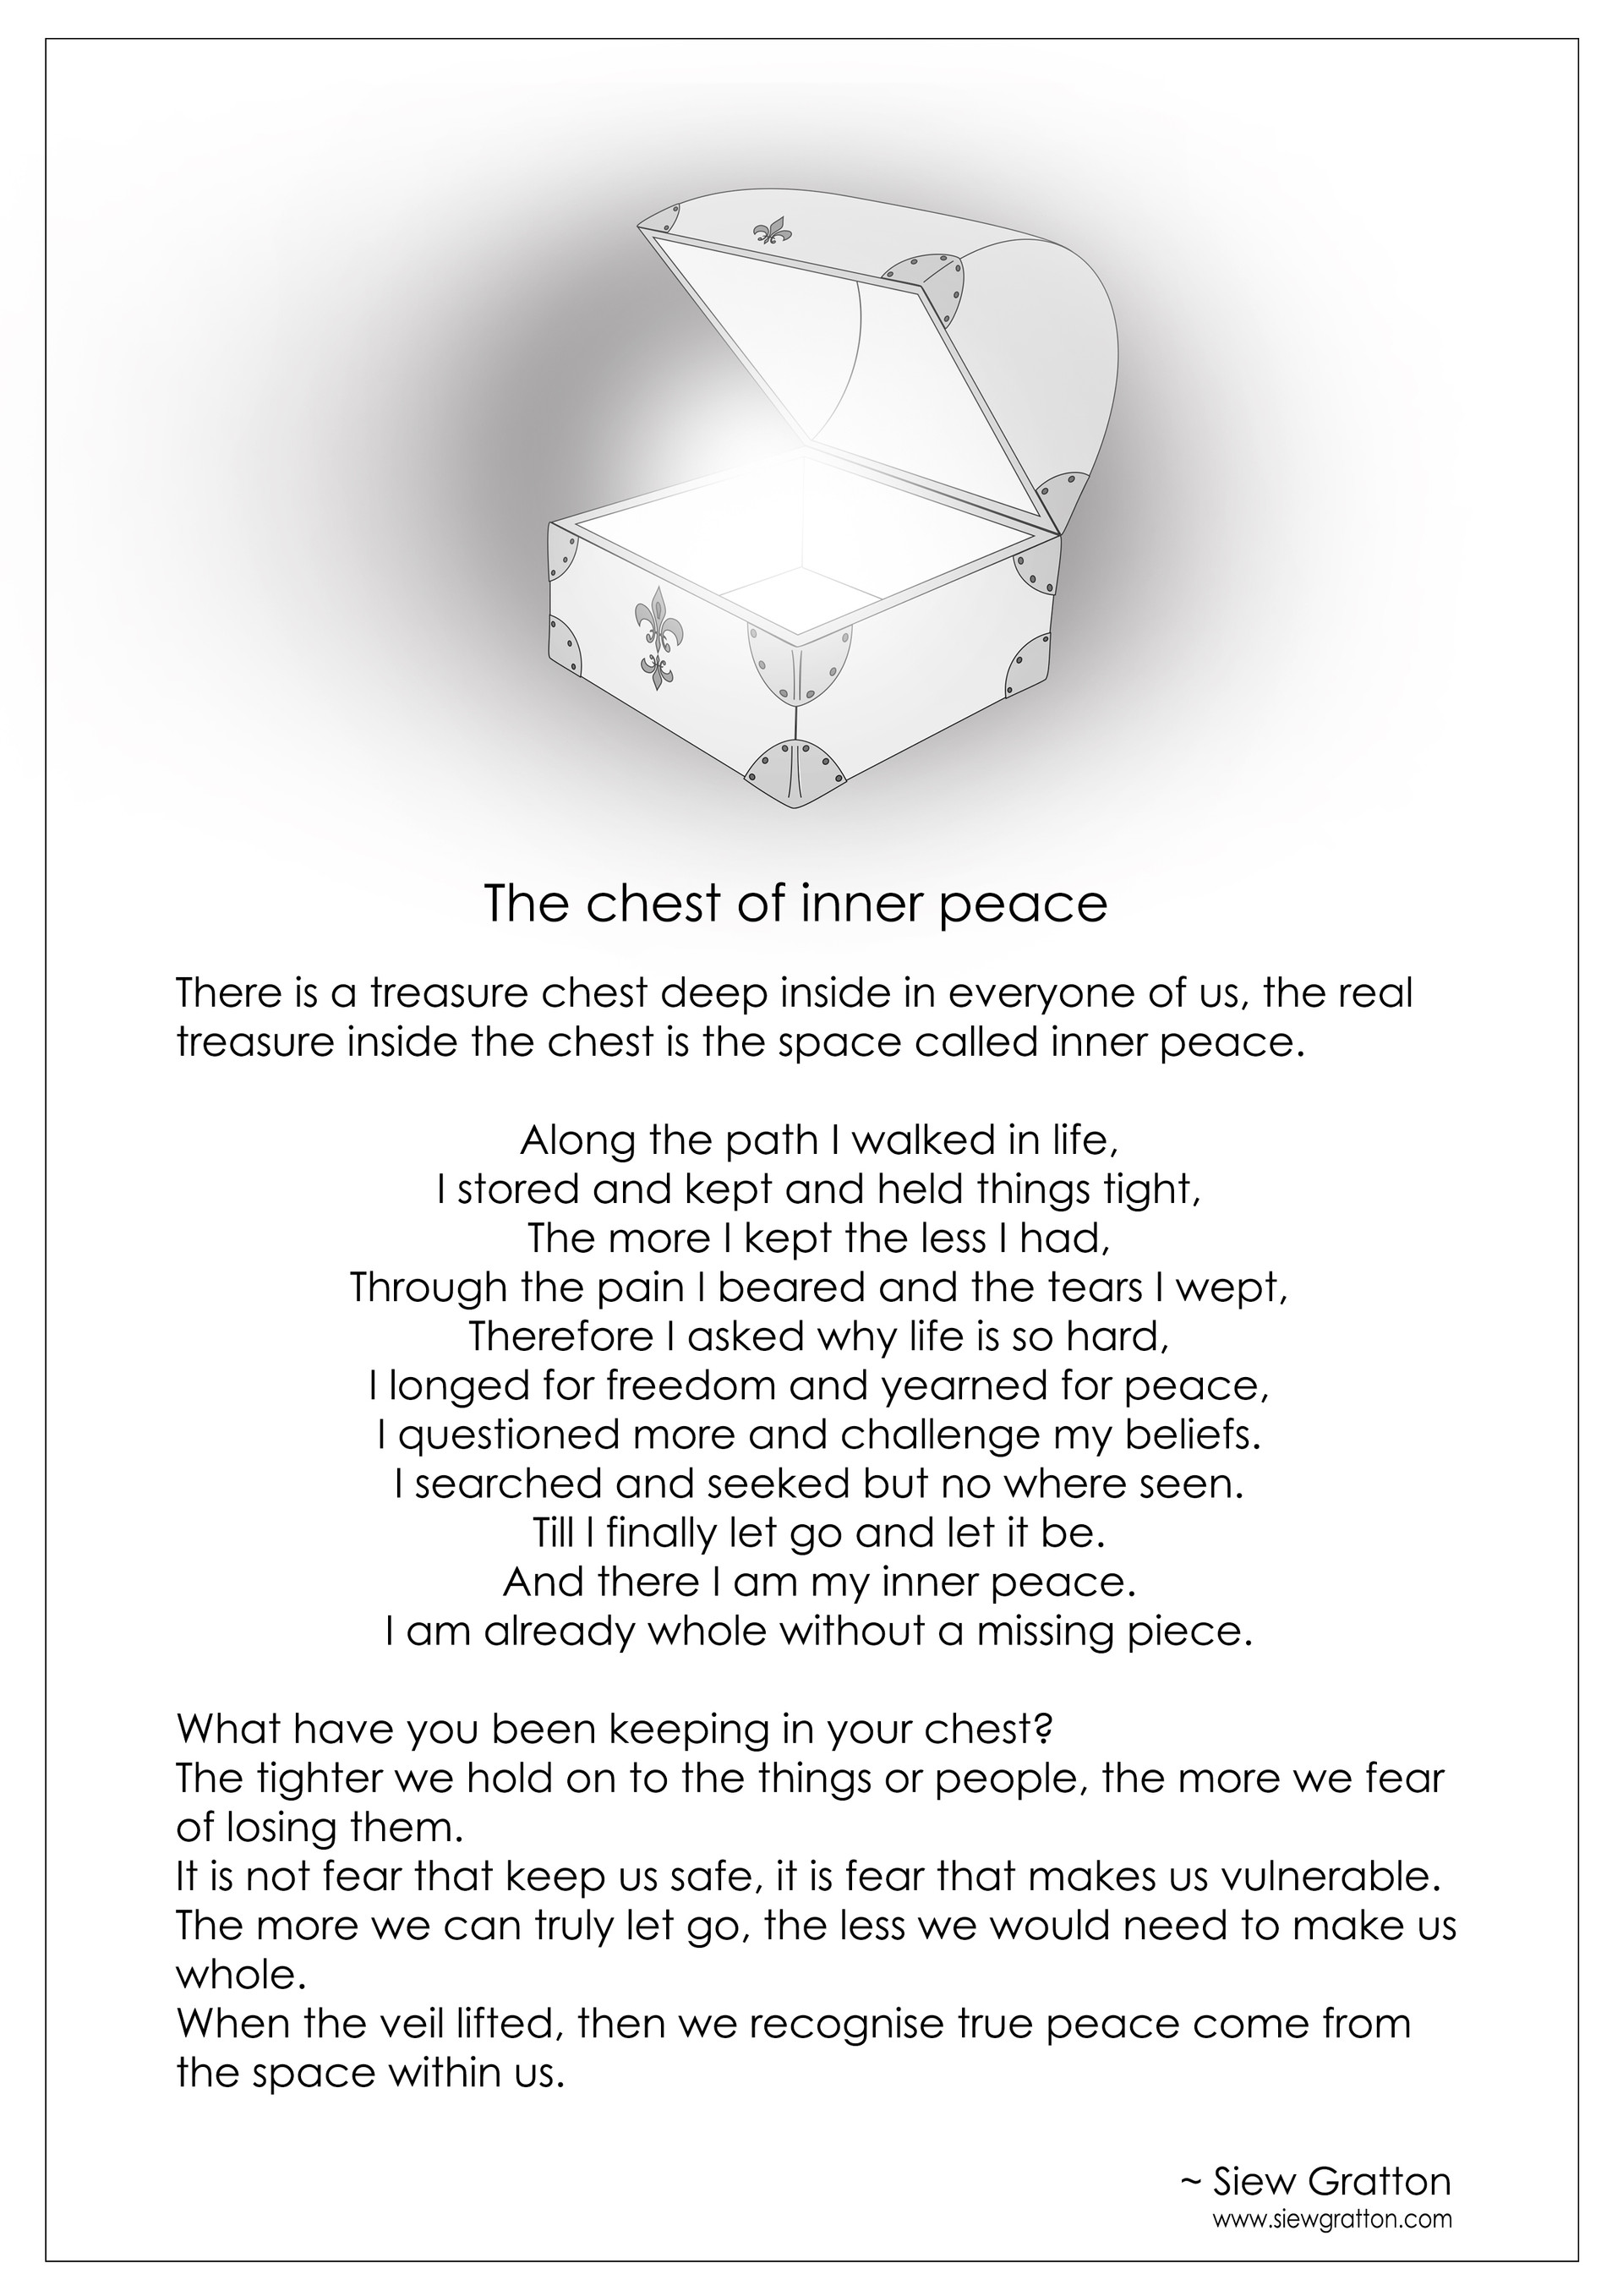 The Chest Of Inner Peace by Siew Gratton